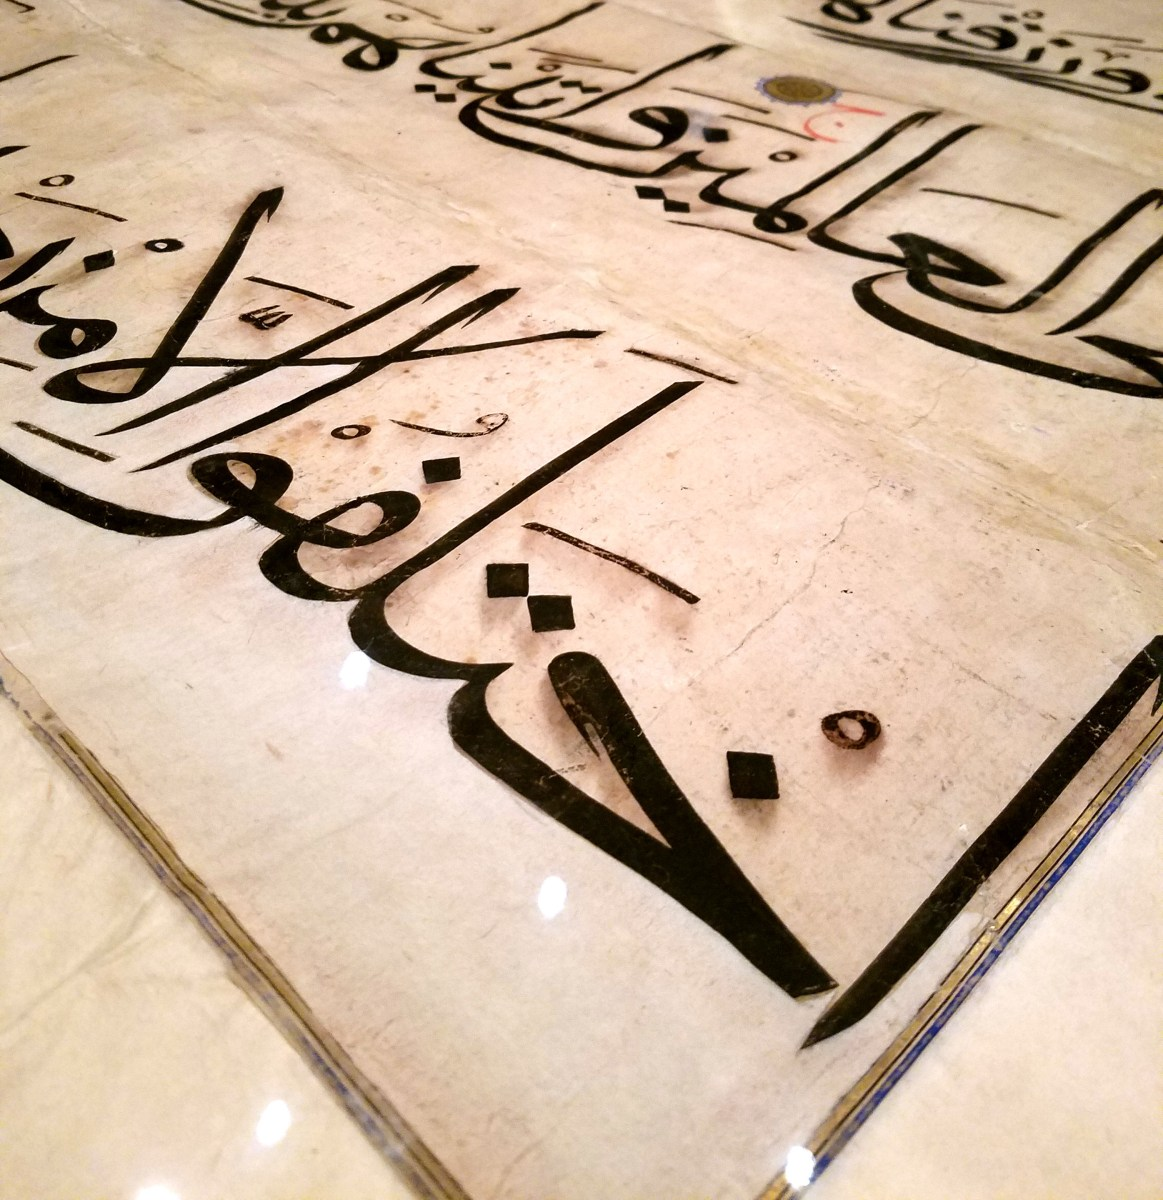 The Art of the Qur'an Exhibition at the Smithsonian in Washington D.C.